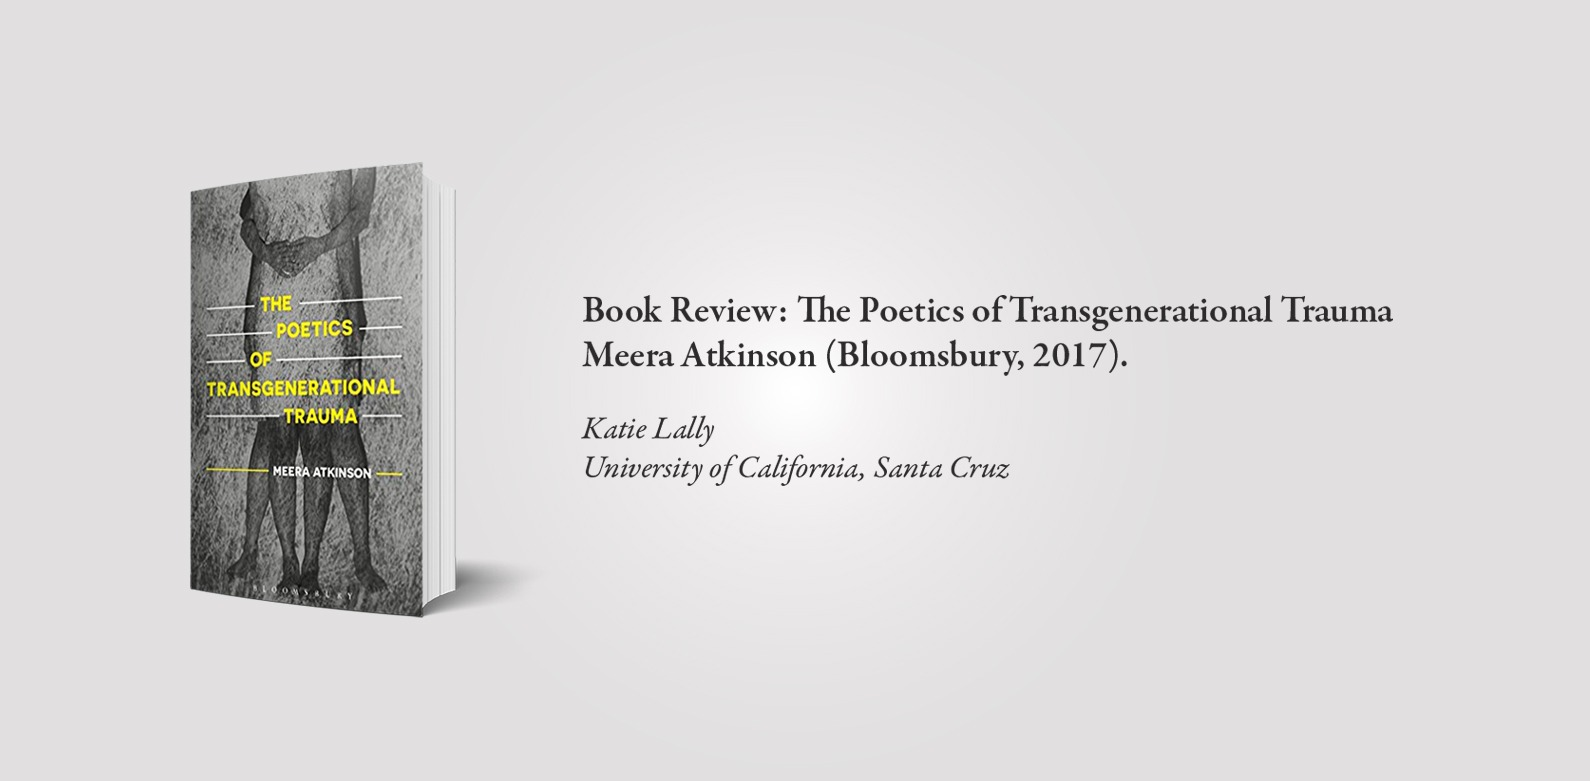 Book Review: The Poetics of Transgenerational Trauma (Meera Atkinson, Bloomsbury, 2017) — by Katie Lally